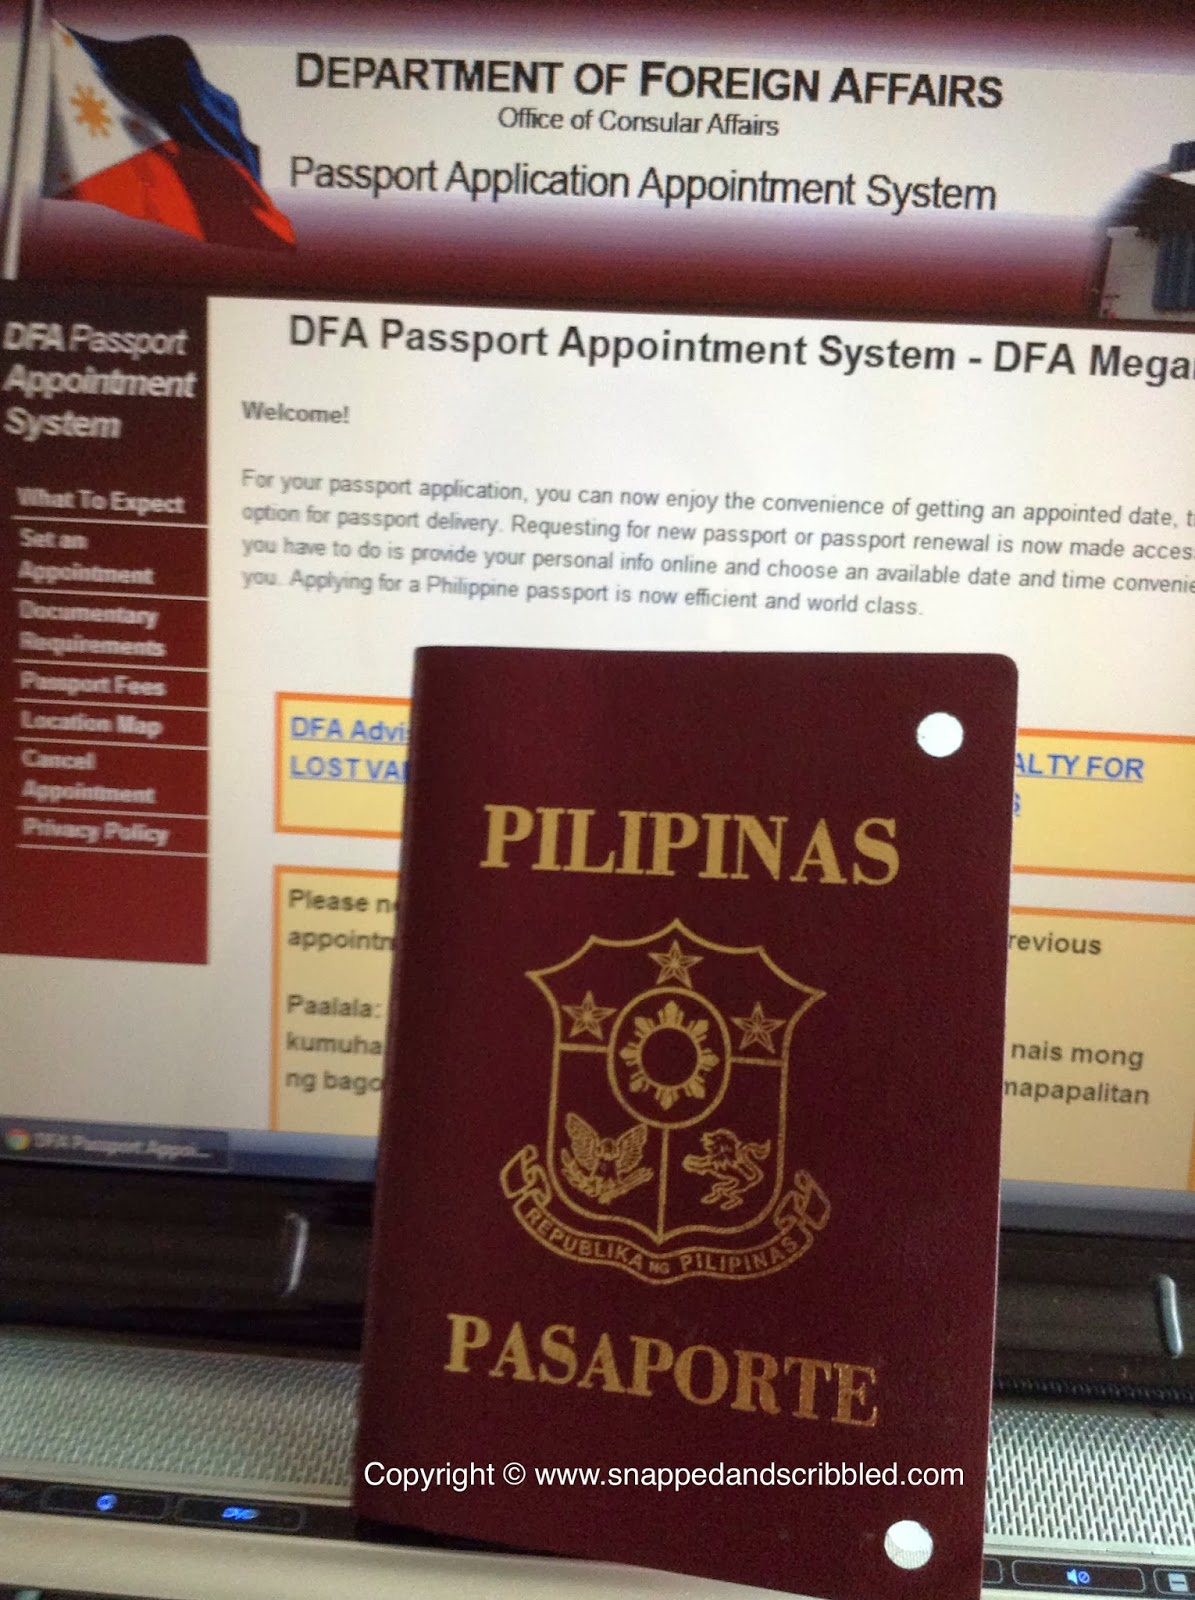 DFA Passport Appointment System